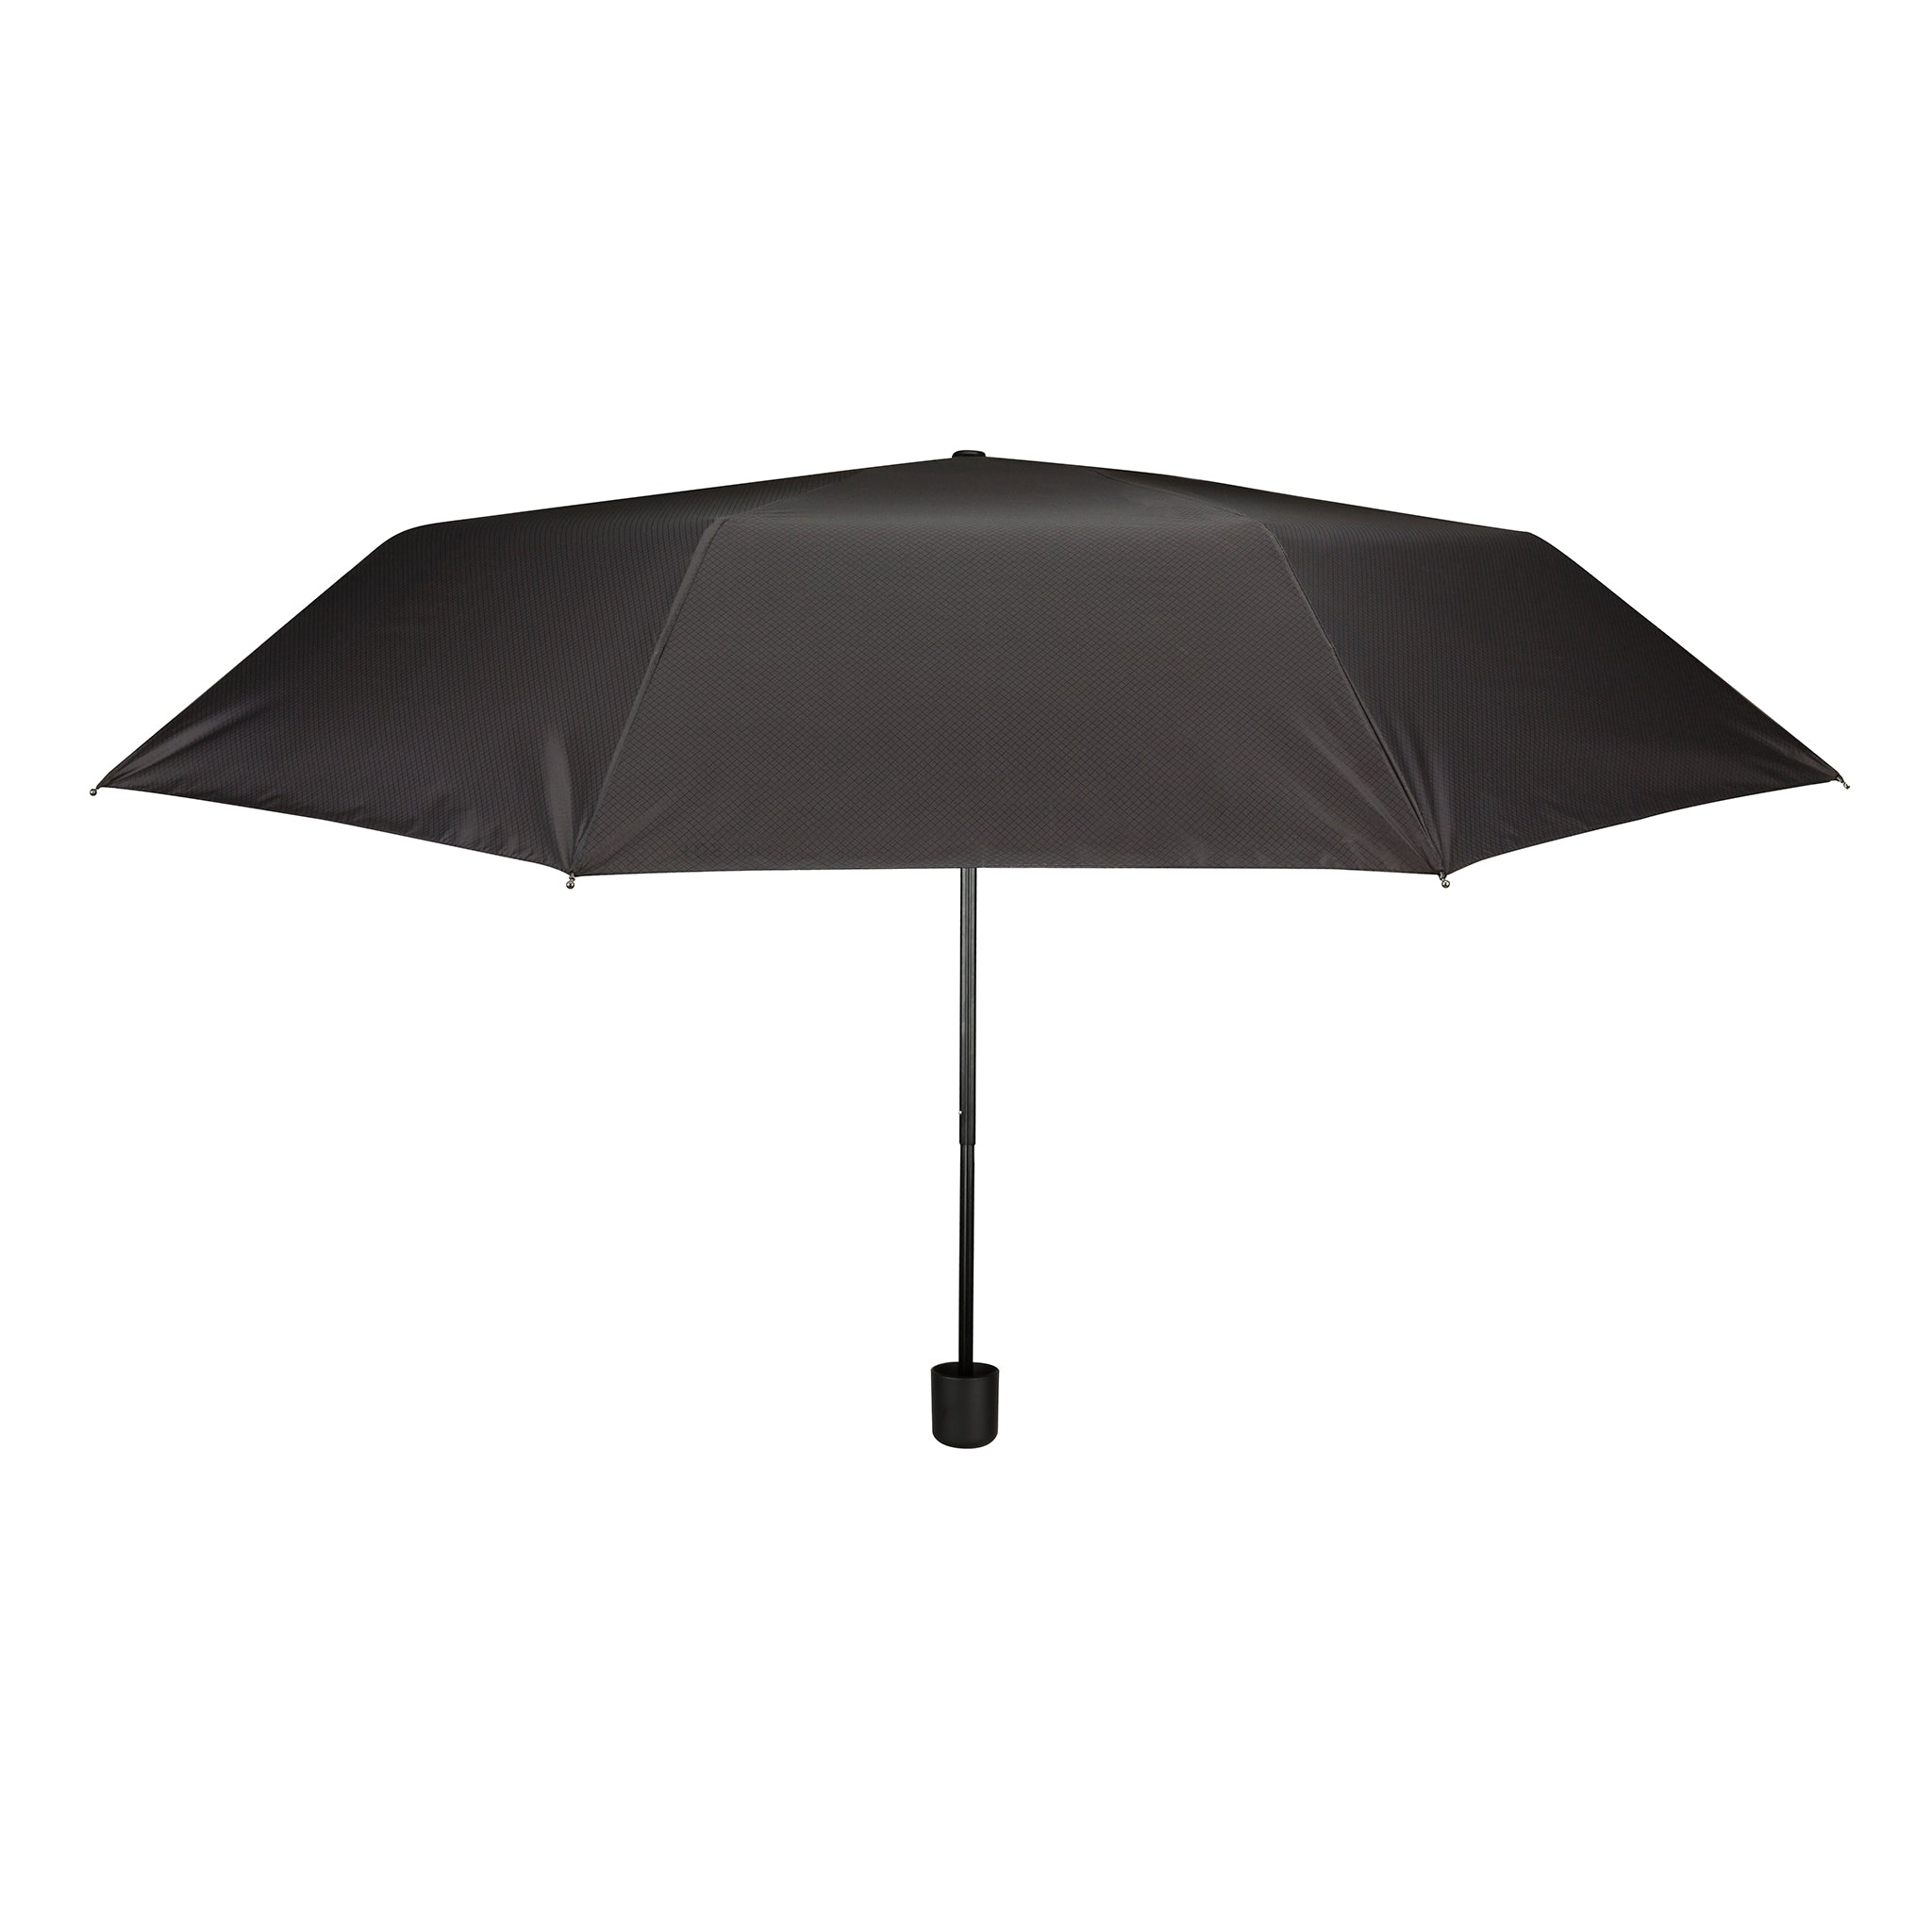 Lightweight Siliconized Nylon Travel Umbrella